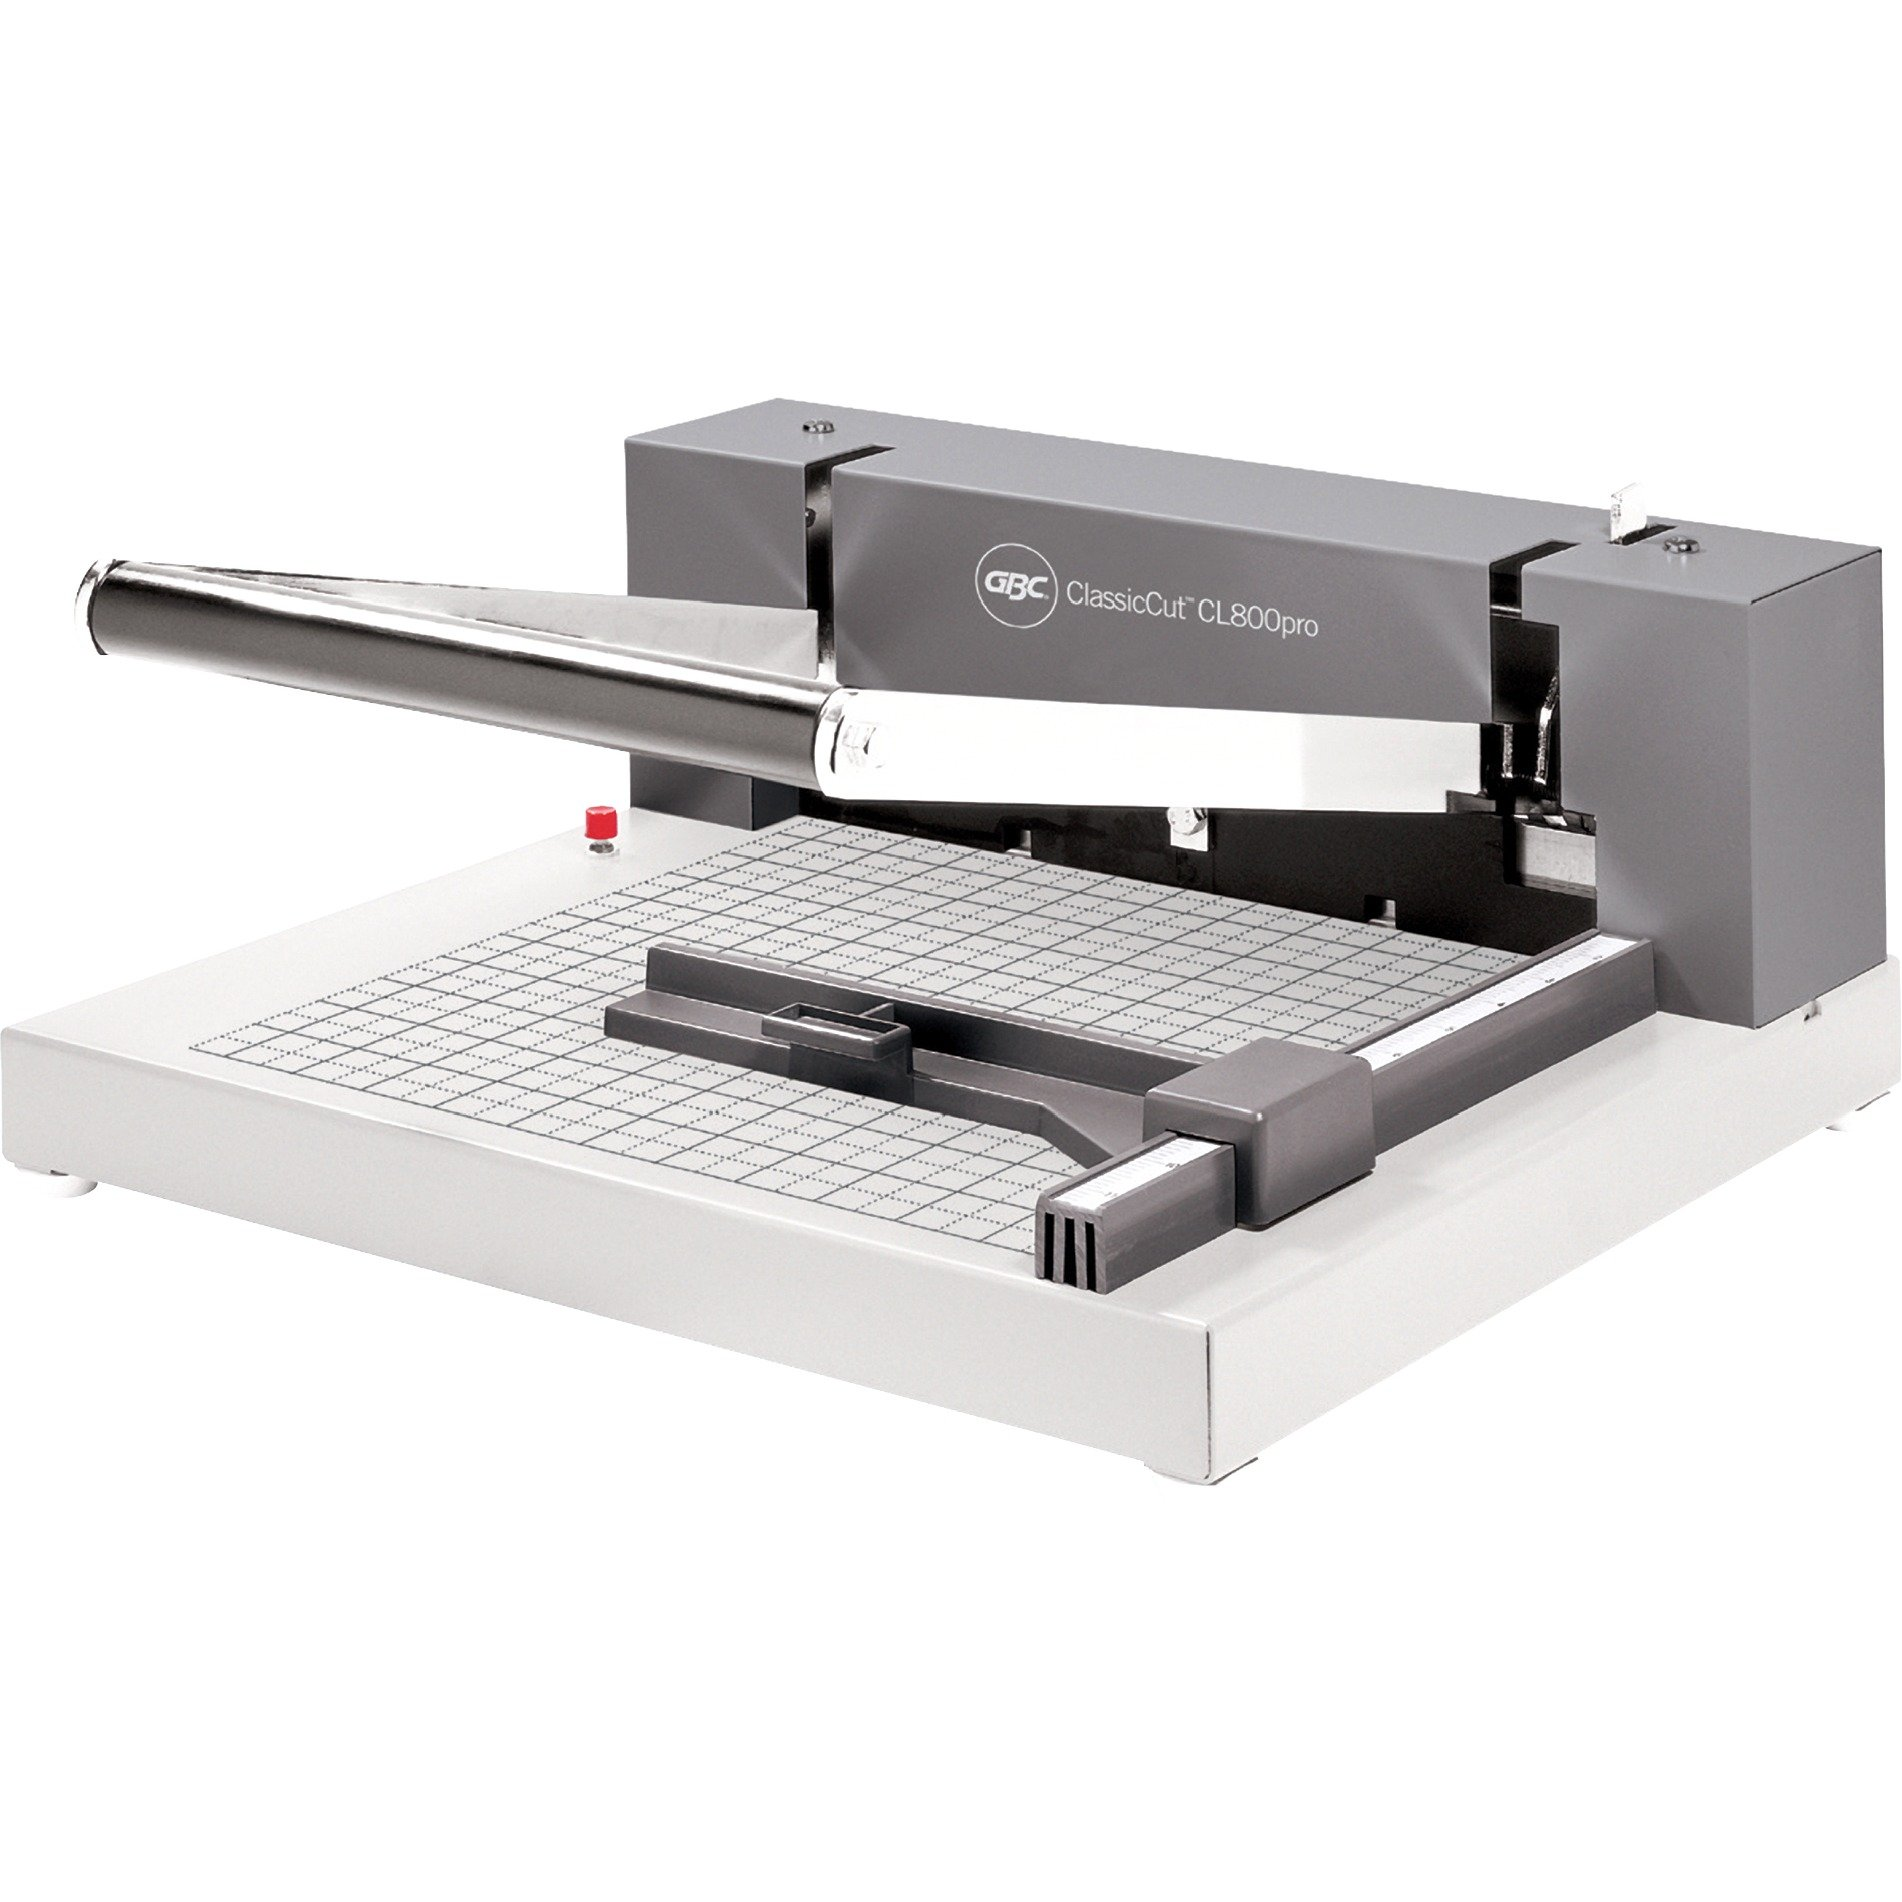 ClassicCut CL800pro 150-Sheet Trimmer, Steel Base, 16 x 13-3/4 by GBC